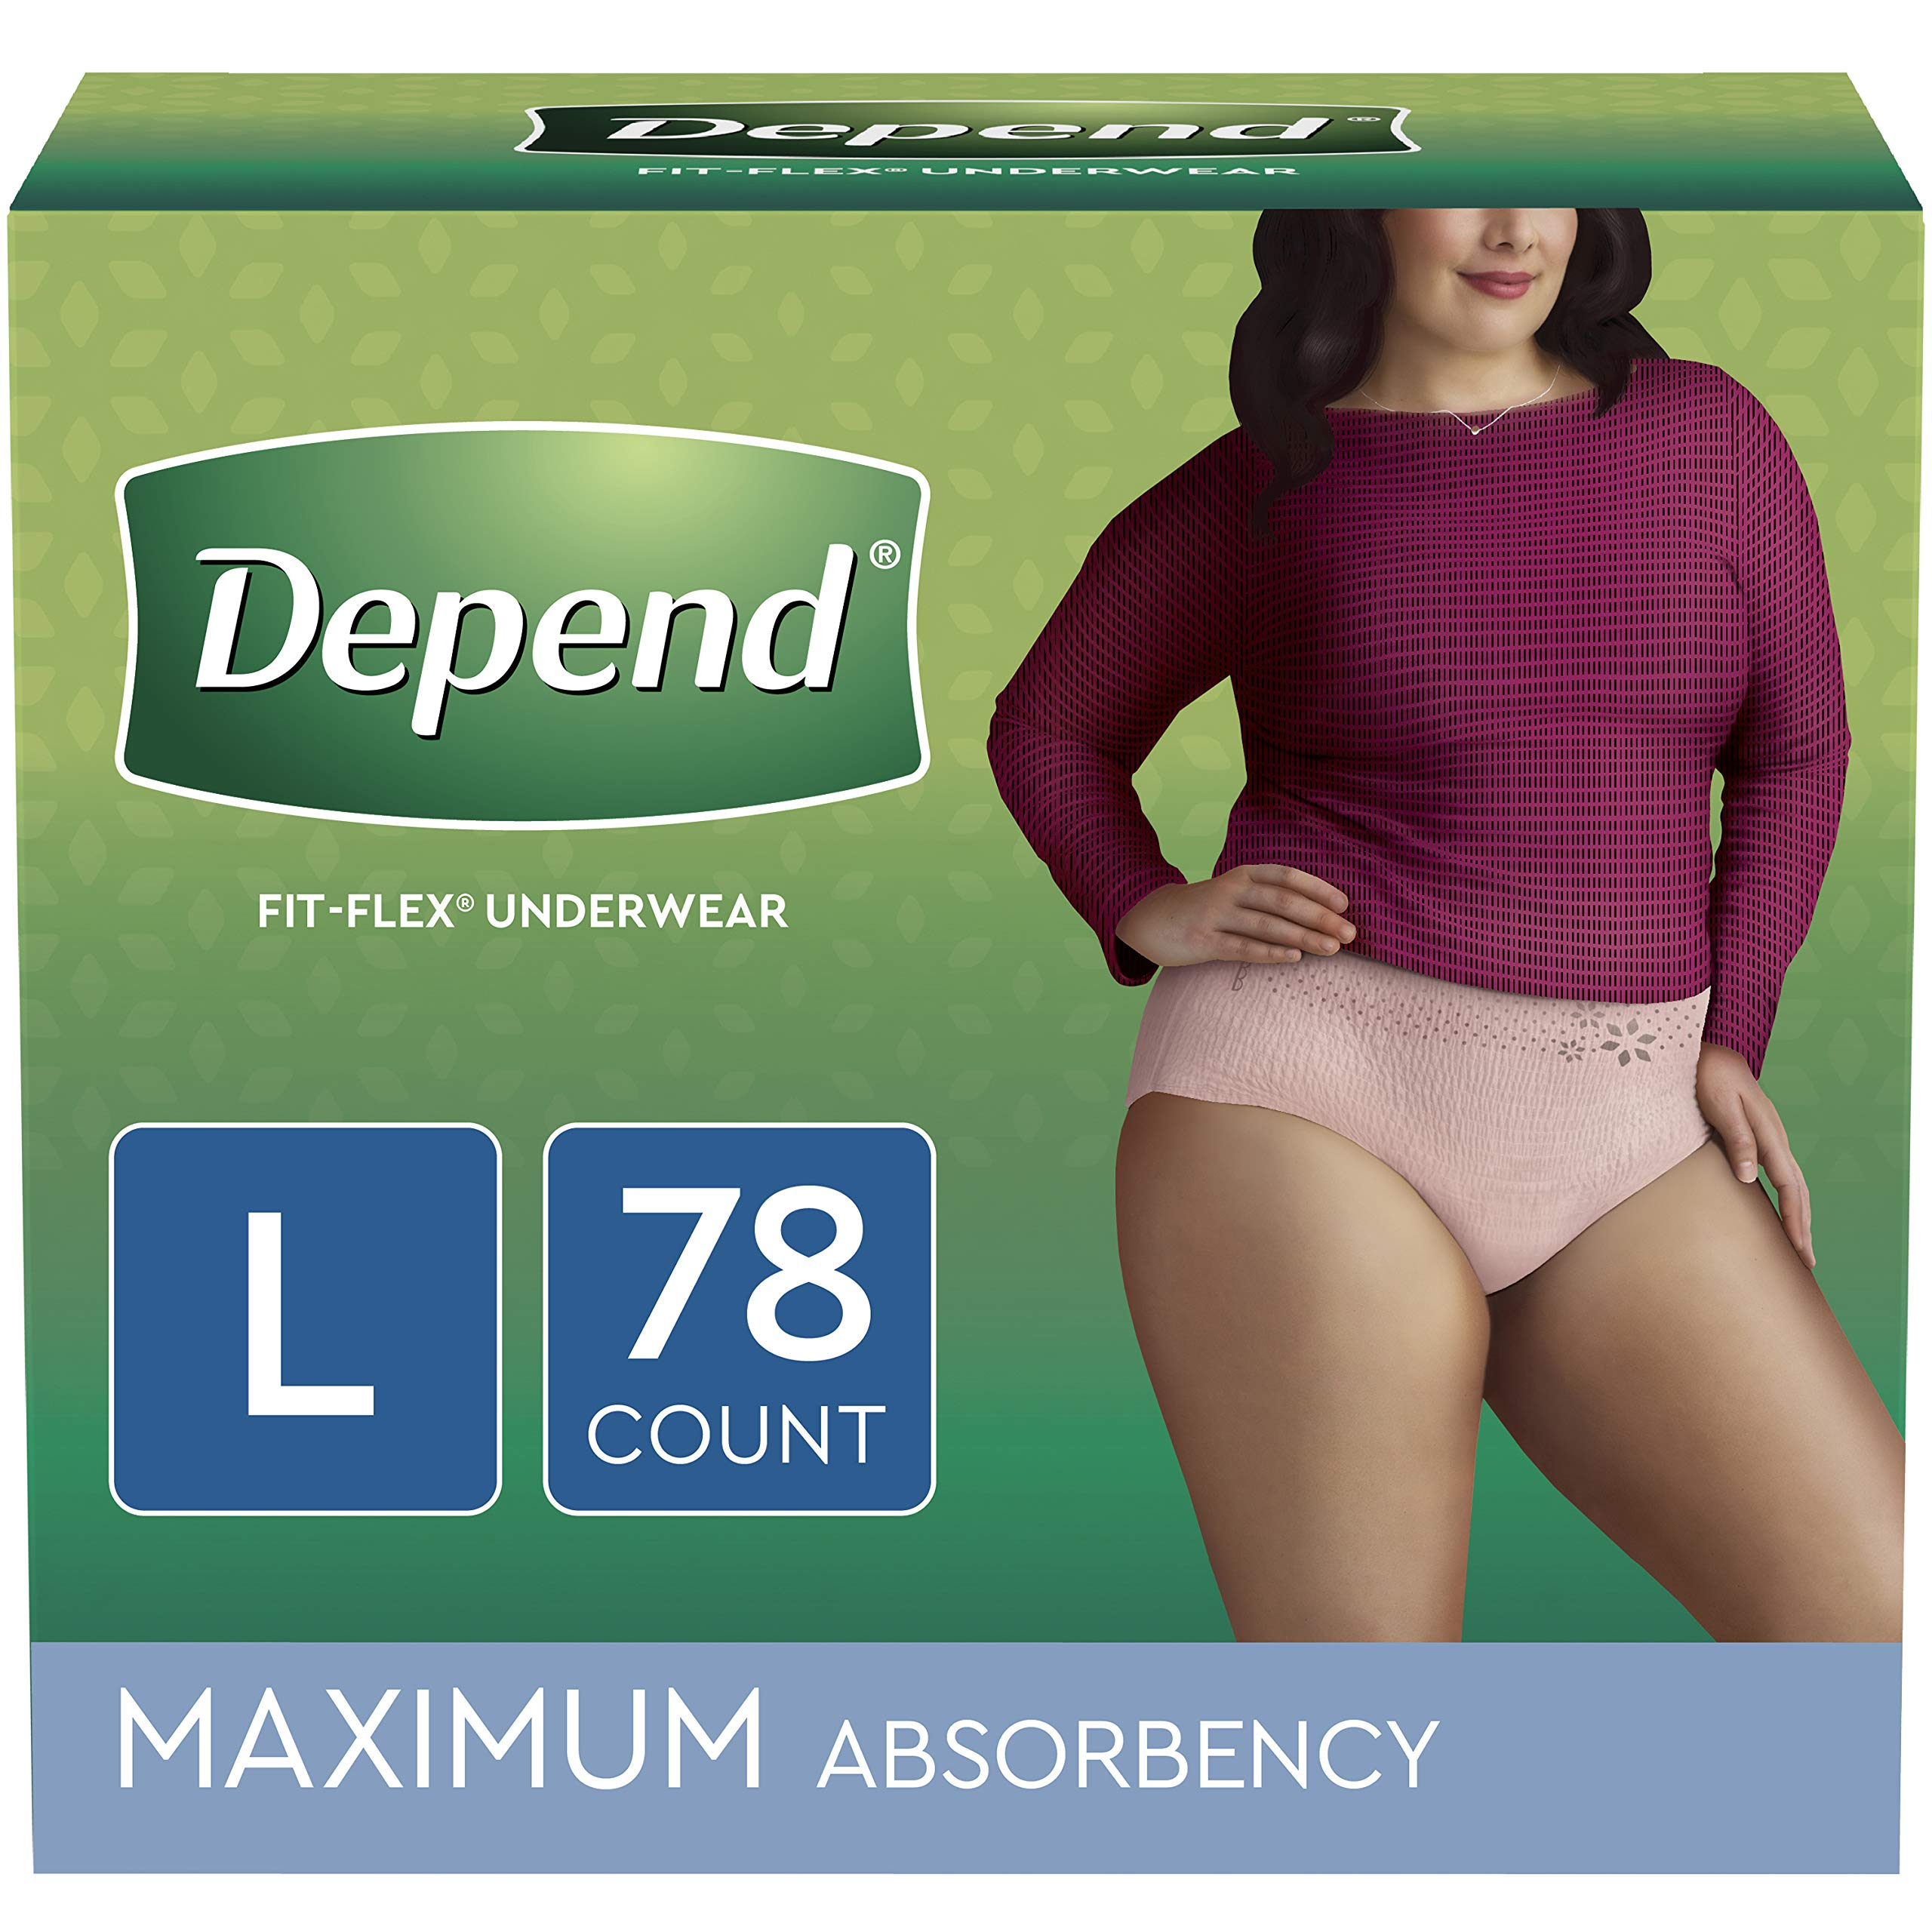 Depend FIT-FLEX Incontinence Underwear for Women, Disposable, Maximum Absorbency, Large, Blush, 78 Count by Depend